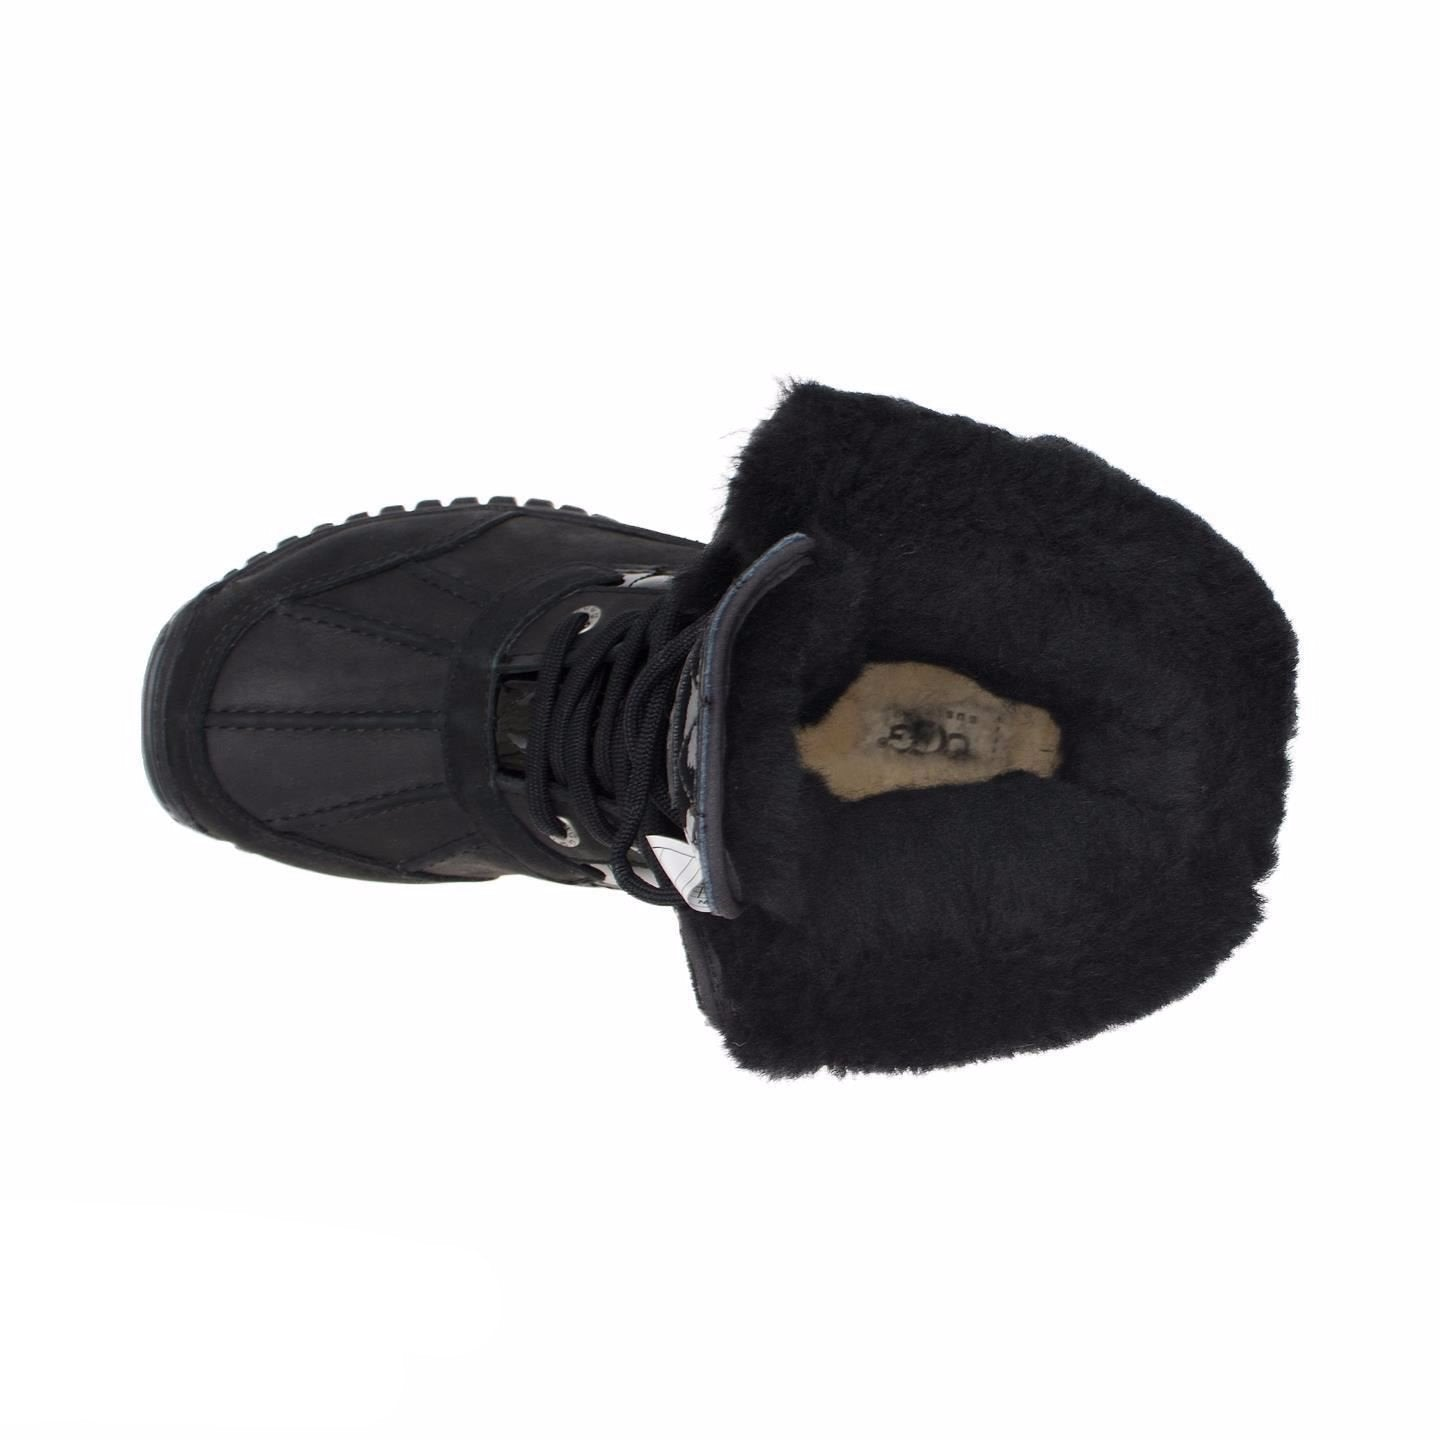 8dbd092936a UGG Adirondack Quilted Black Boots